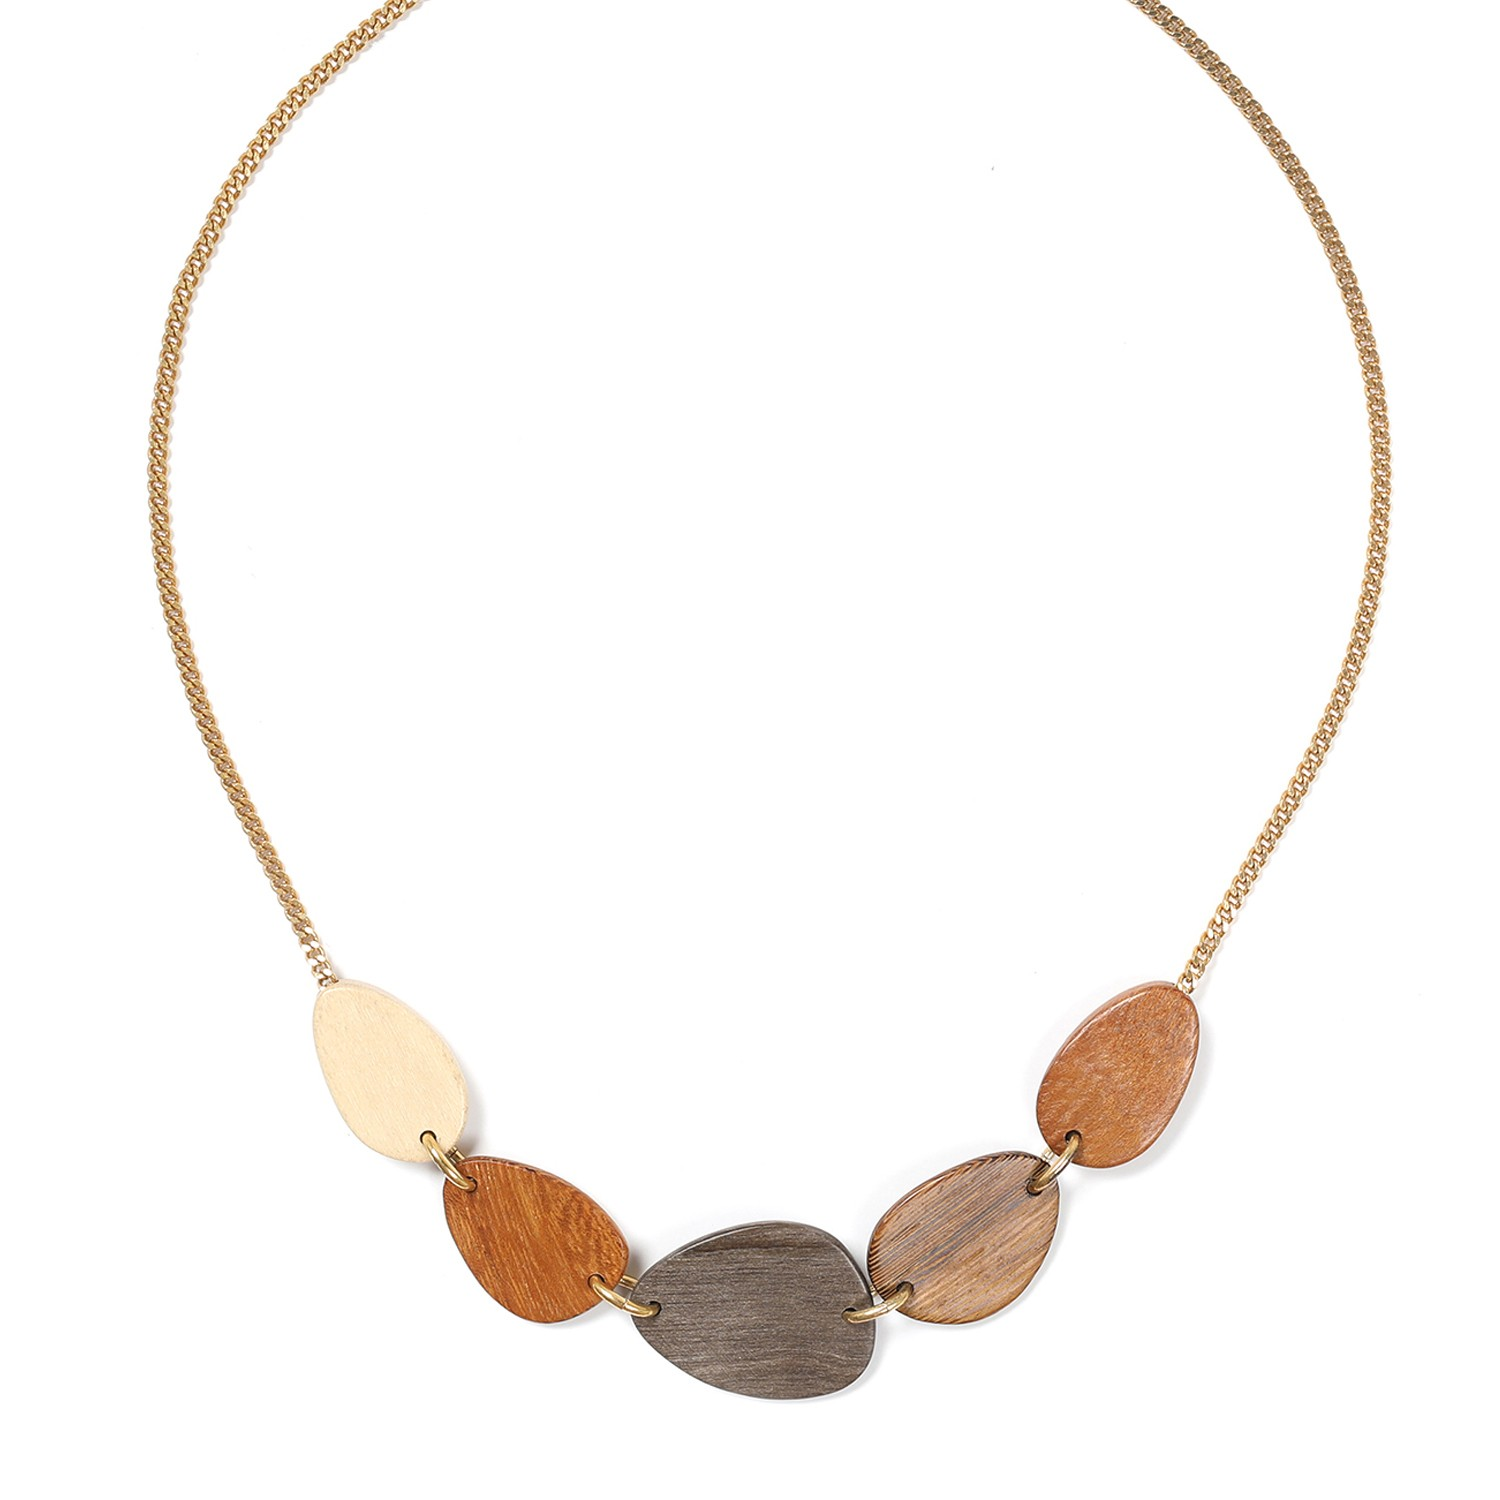 CHAMBORD simple necklace